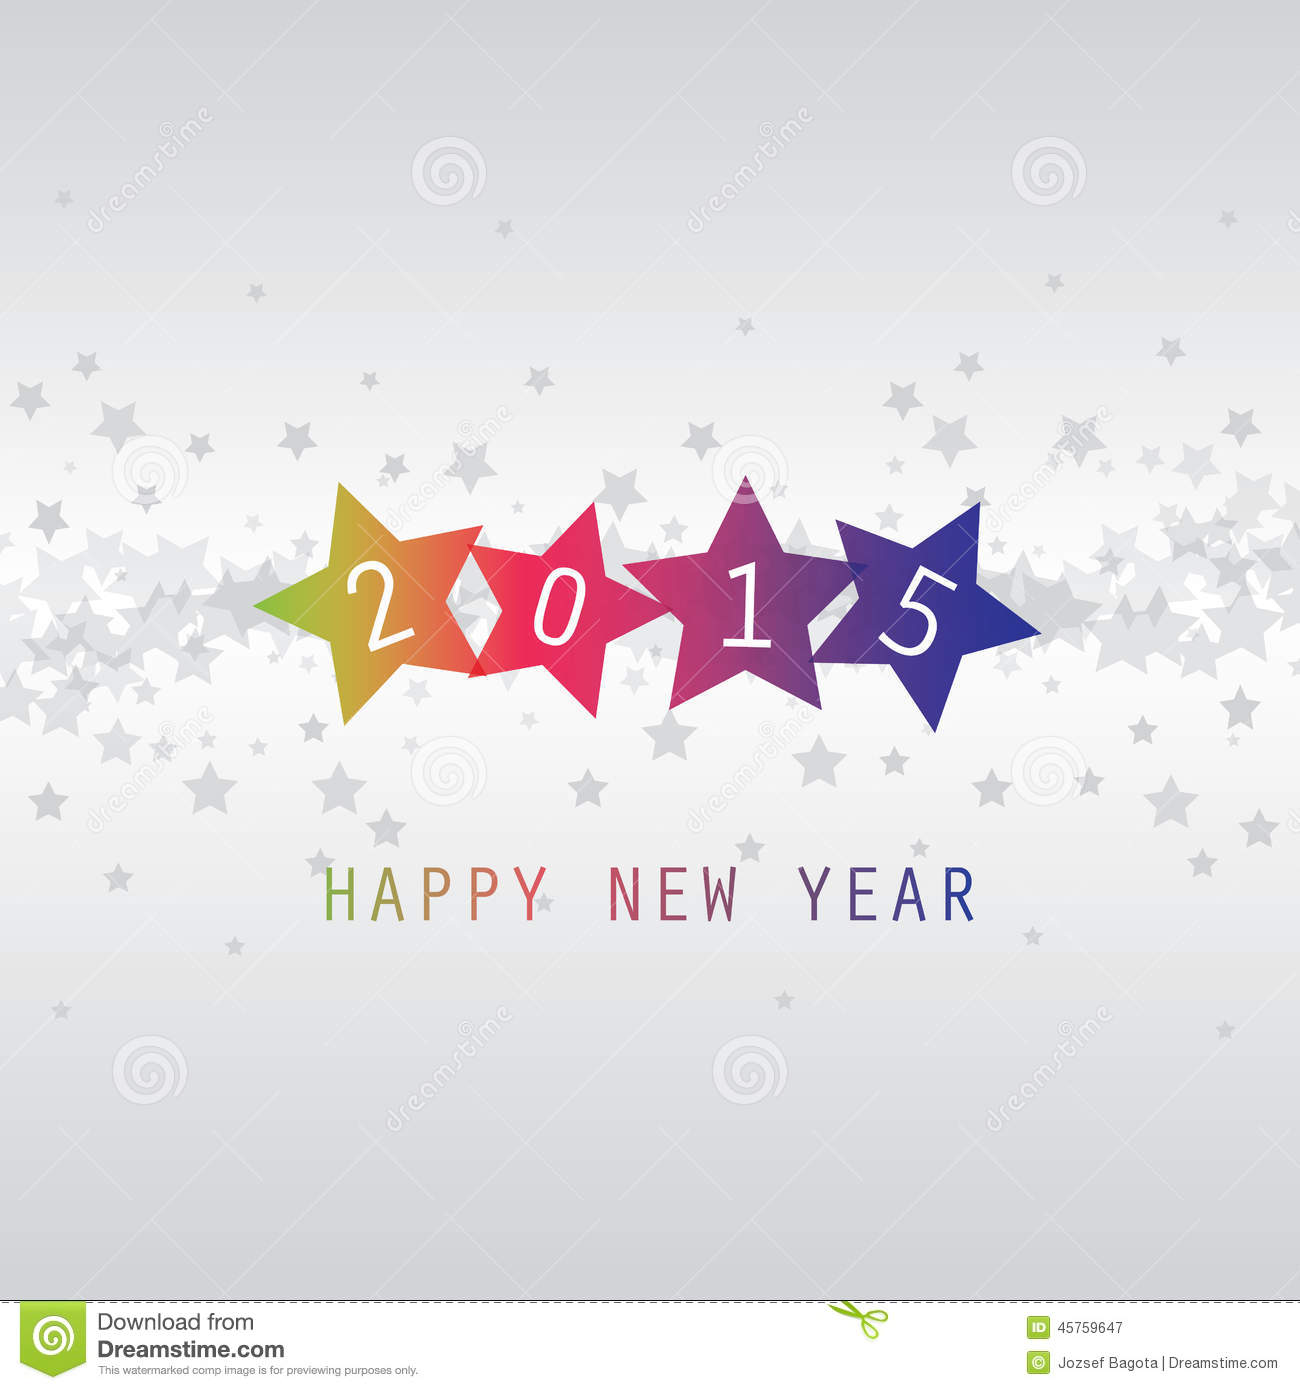 New year card happy new year 2015 stock vector image for Best cards for 2015